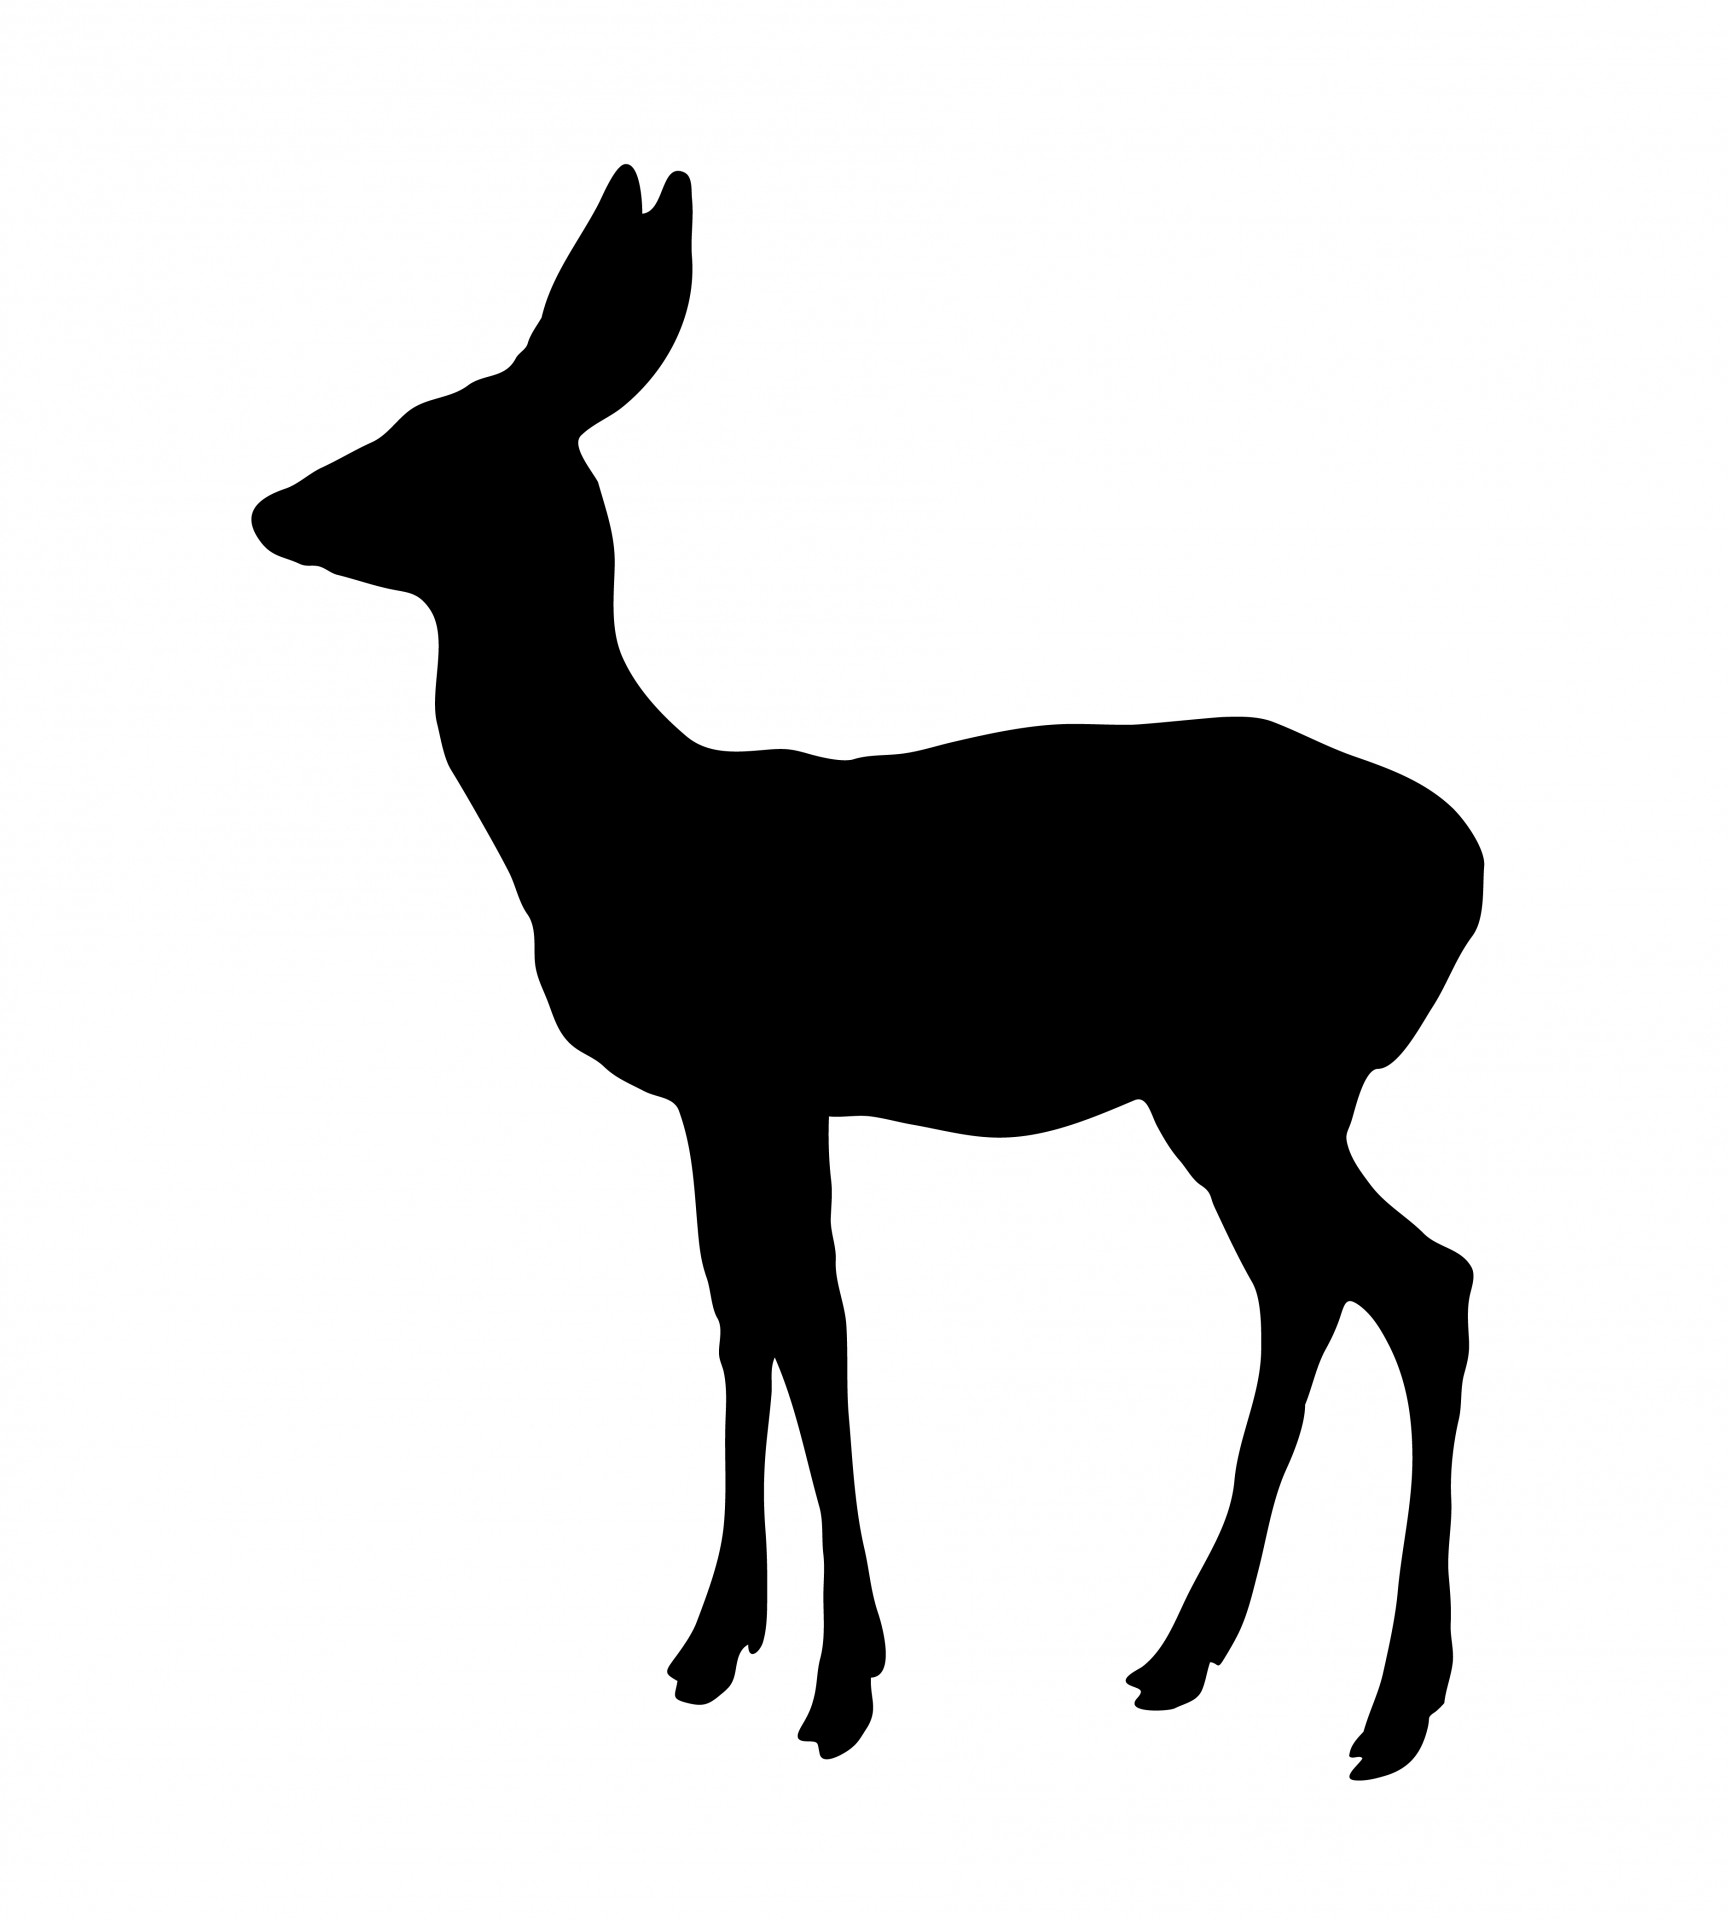 Deer Silhouette Free Stock Photo - Public Domain Pictures